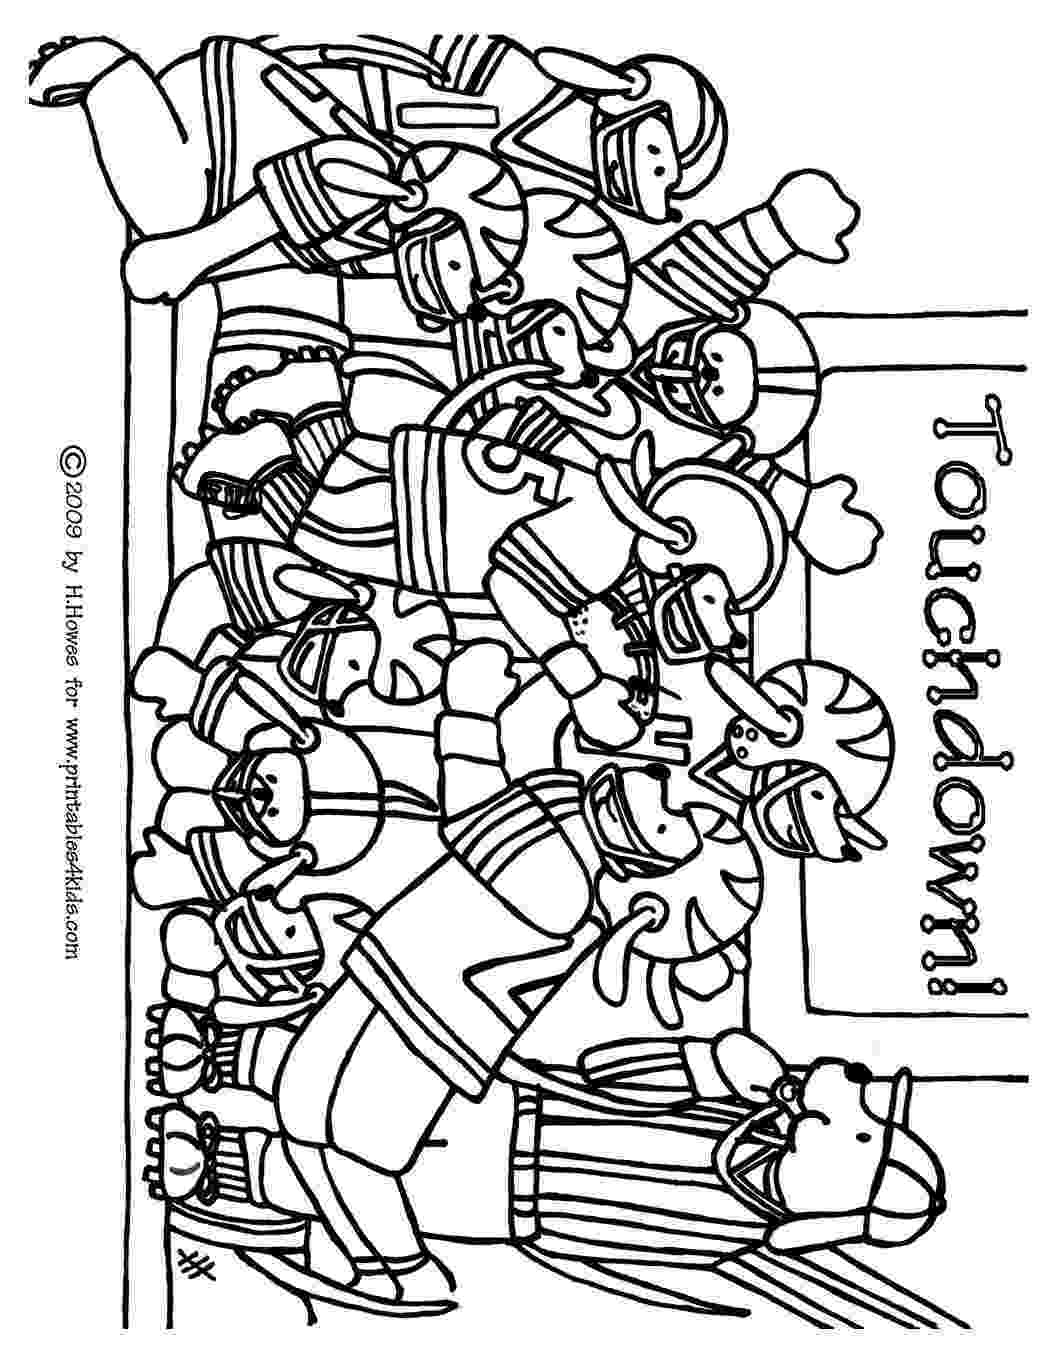 football coloring page football helmet coloring pages to download and print for free page football coloring